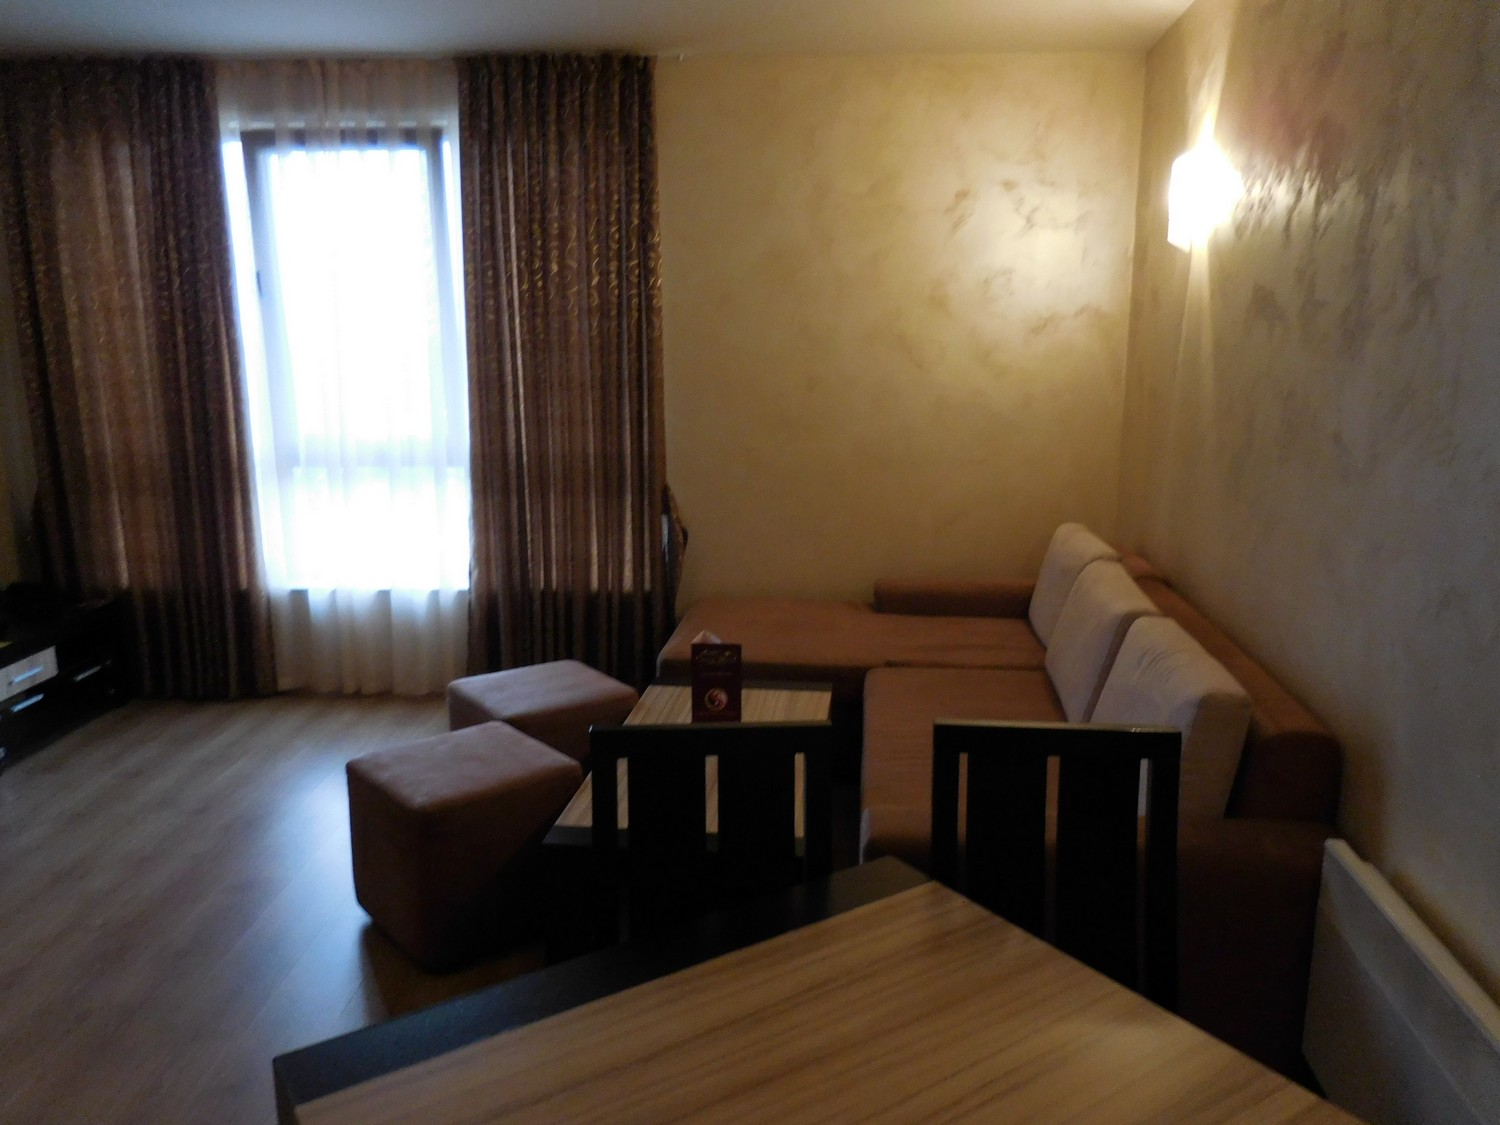 Green Wood Hotel & SPA, Bansko, Bulgaria, Room Inside, Couch and Table